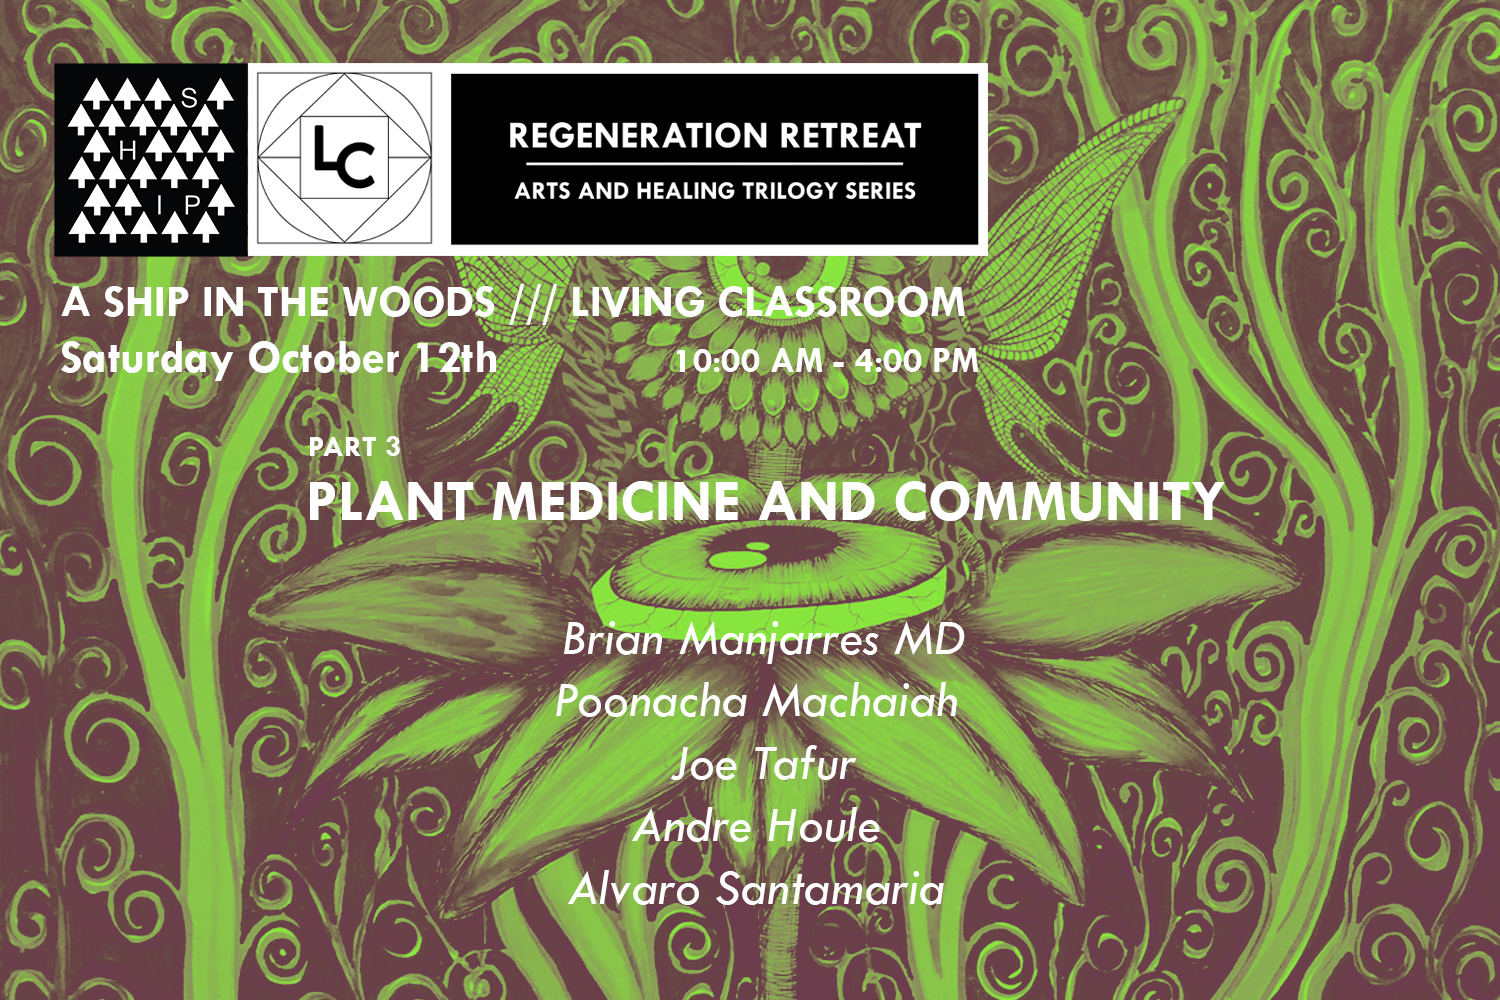 plantmed and community_3.jpg